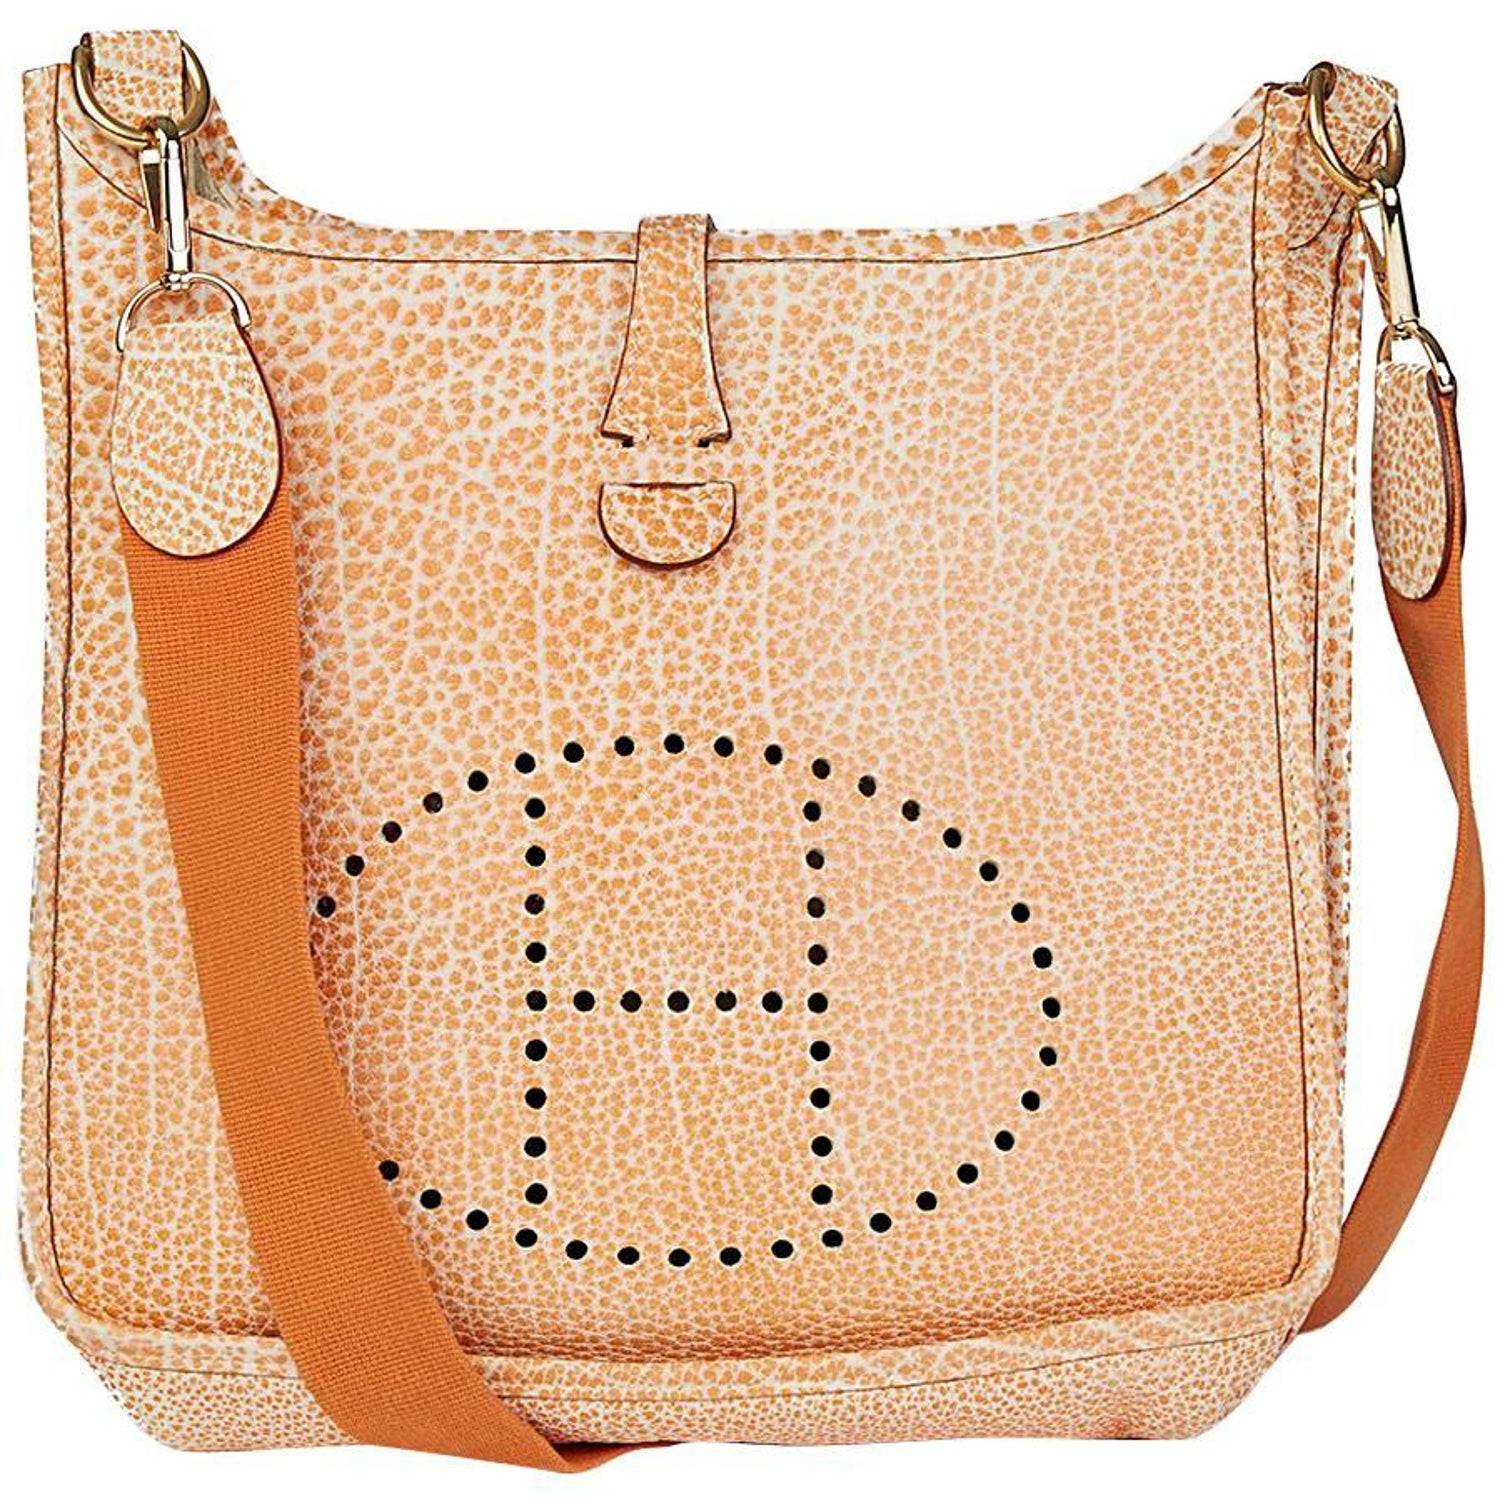 907983924e 2002 Hermes Orange Dalmatian Buffalo Leather Evelyne I PM at 1stdibs